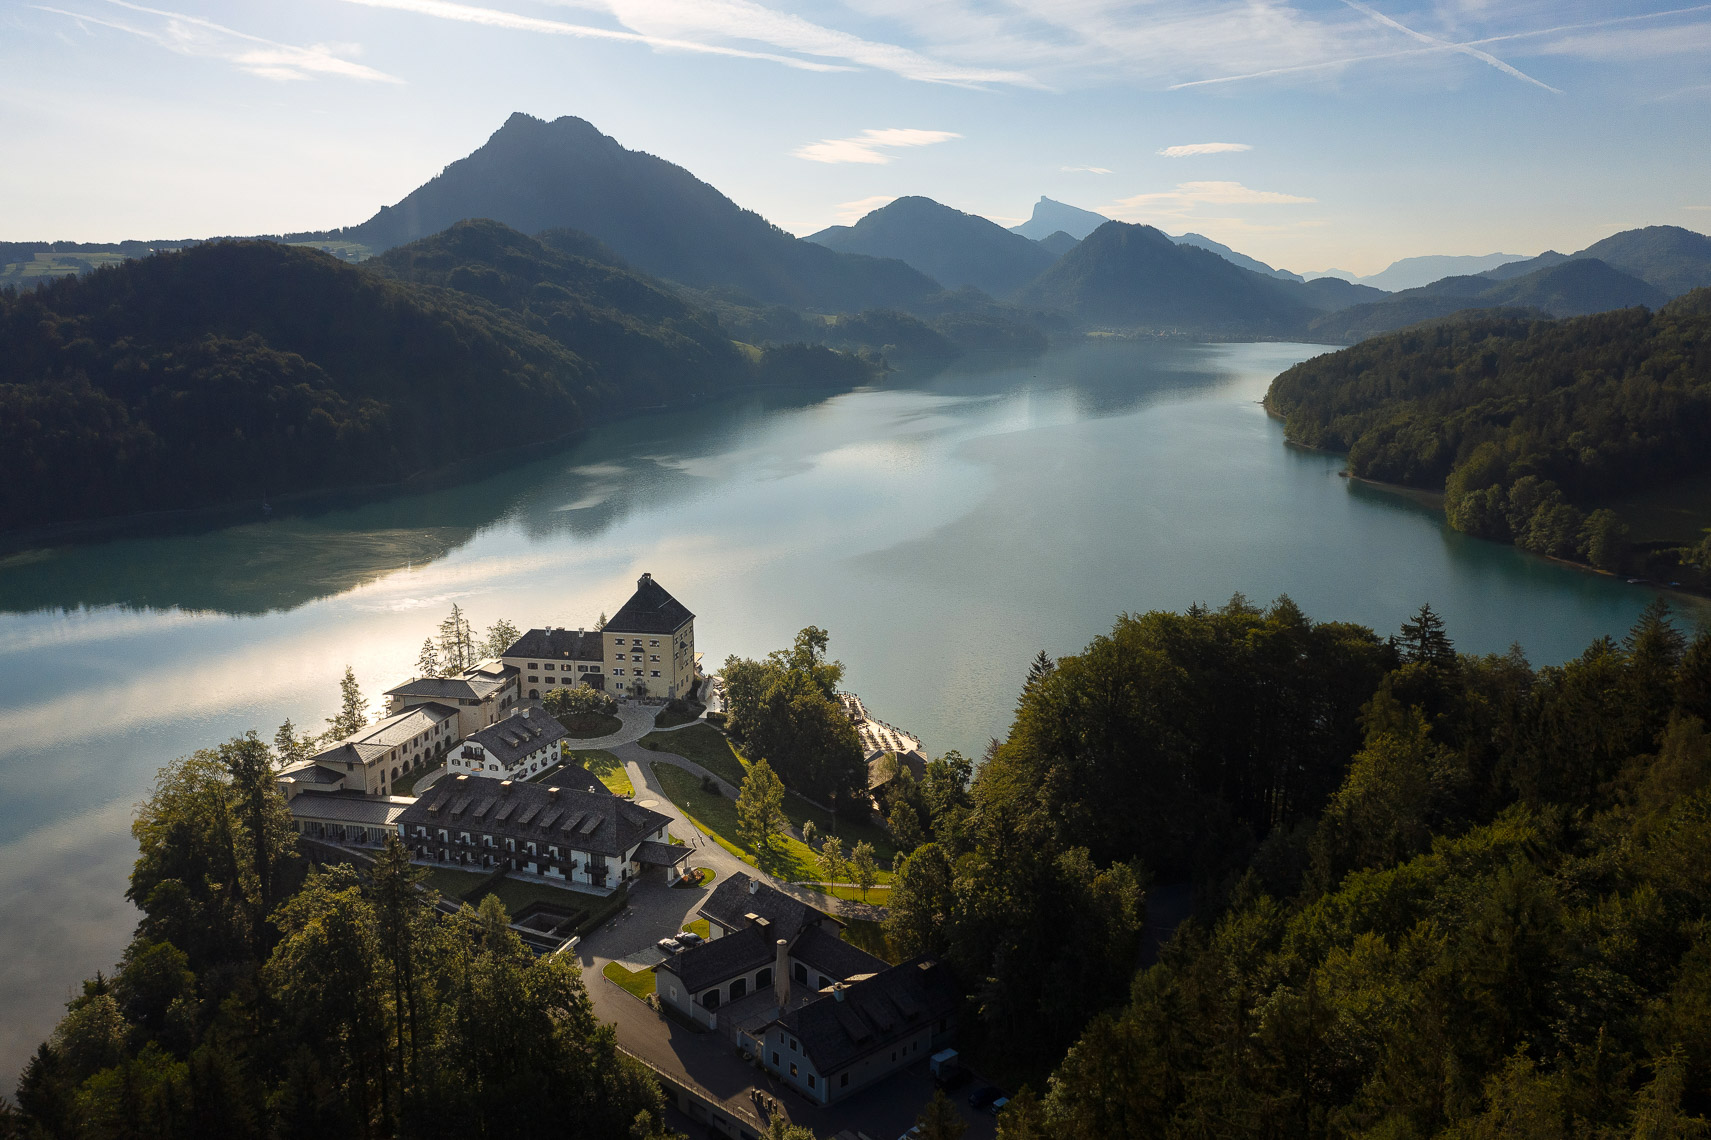 richard-schabetsberger-schloss-fuschl-drone-aerial-photography-002